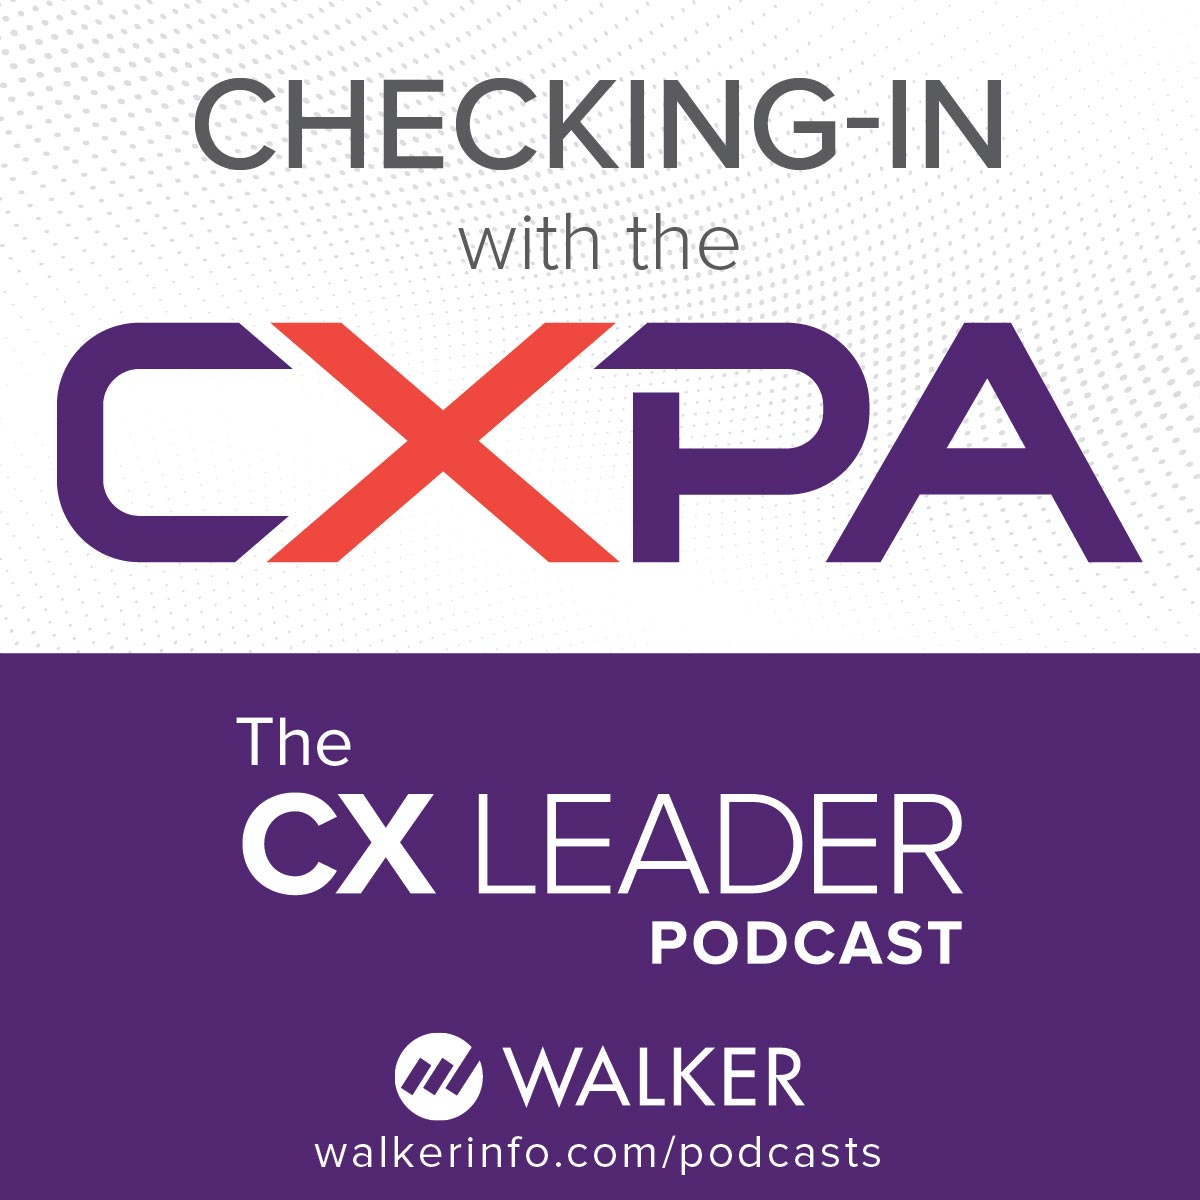 Checking-in with the CXPA